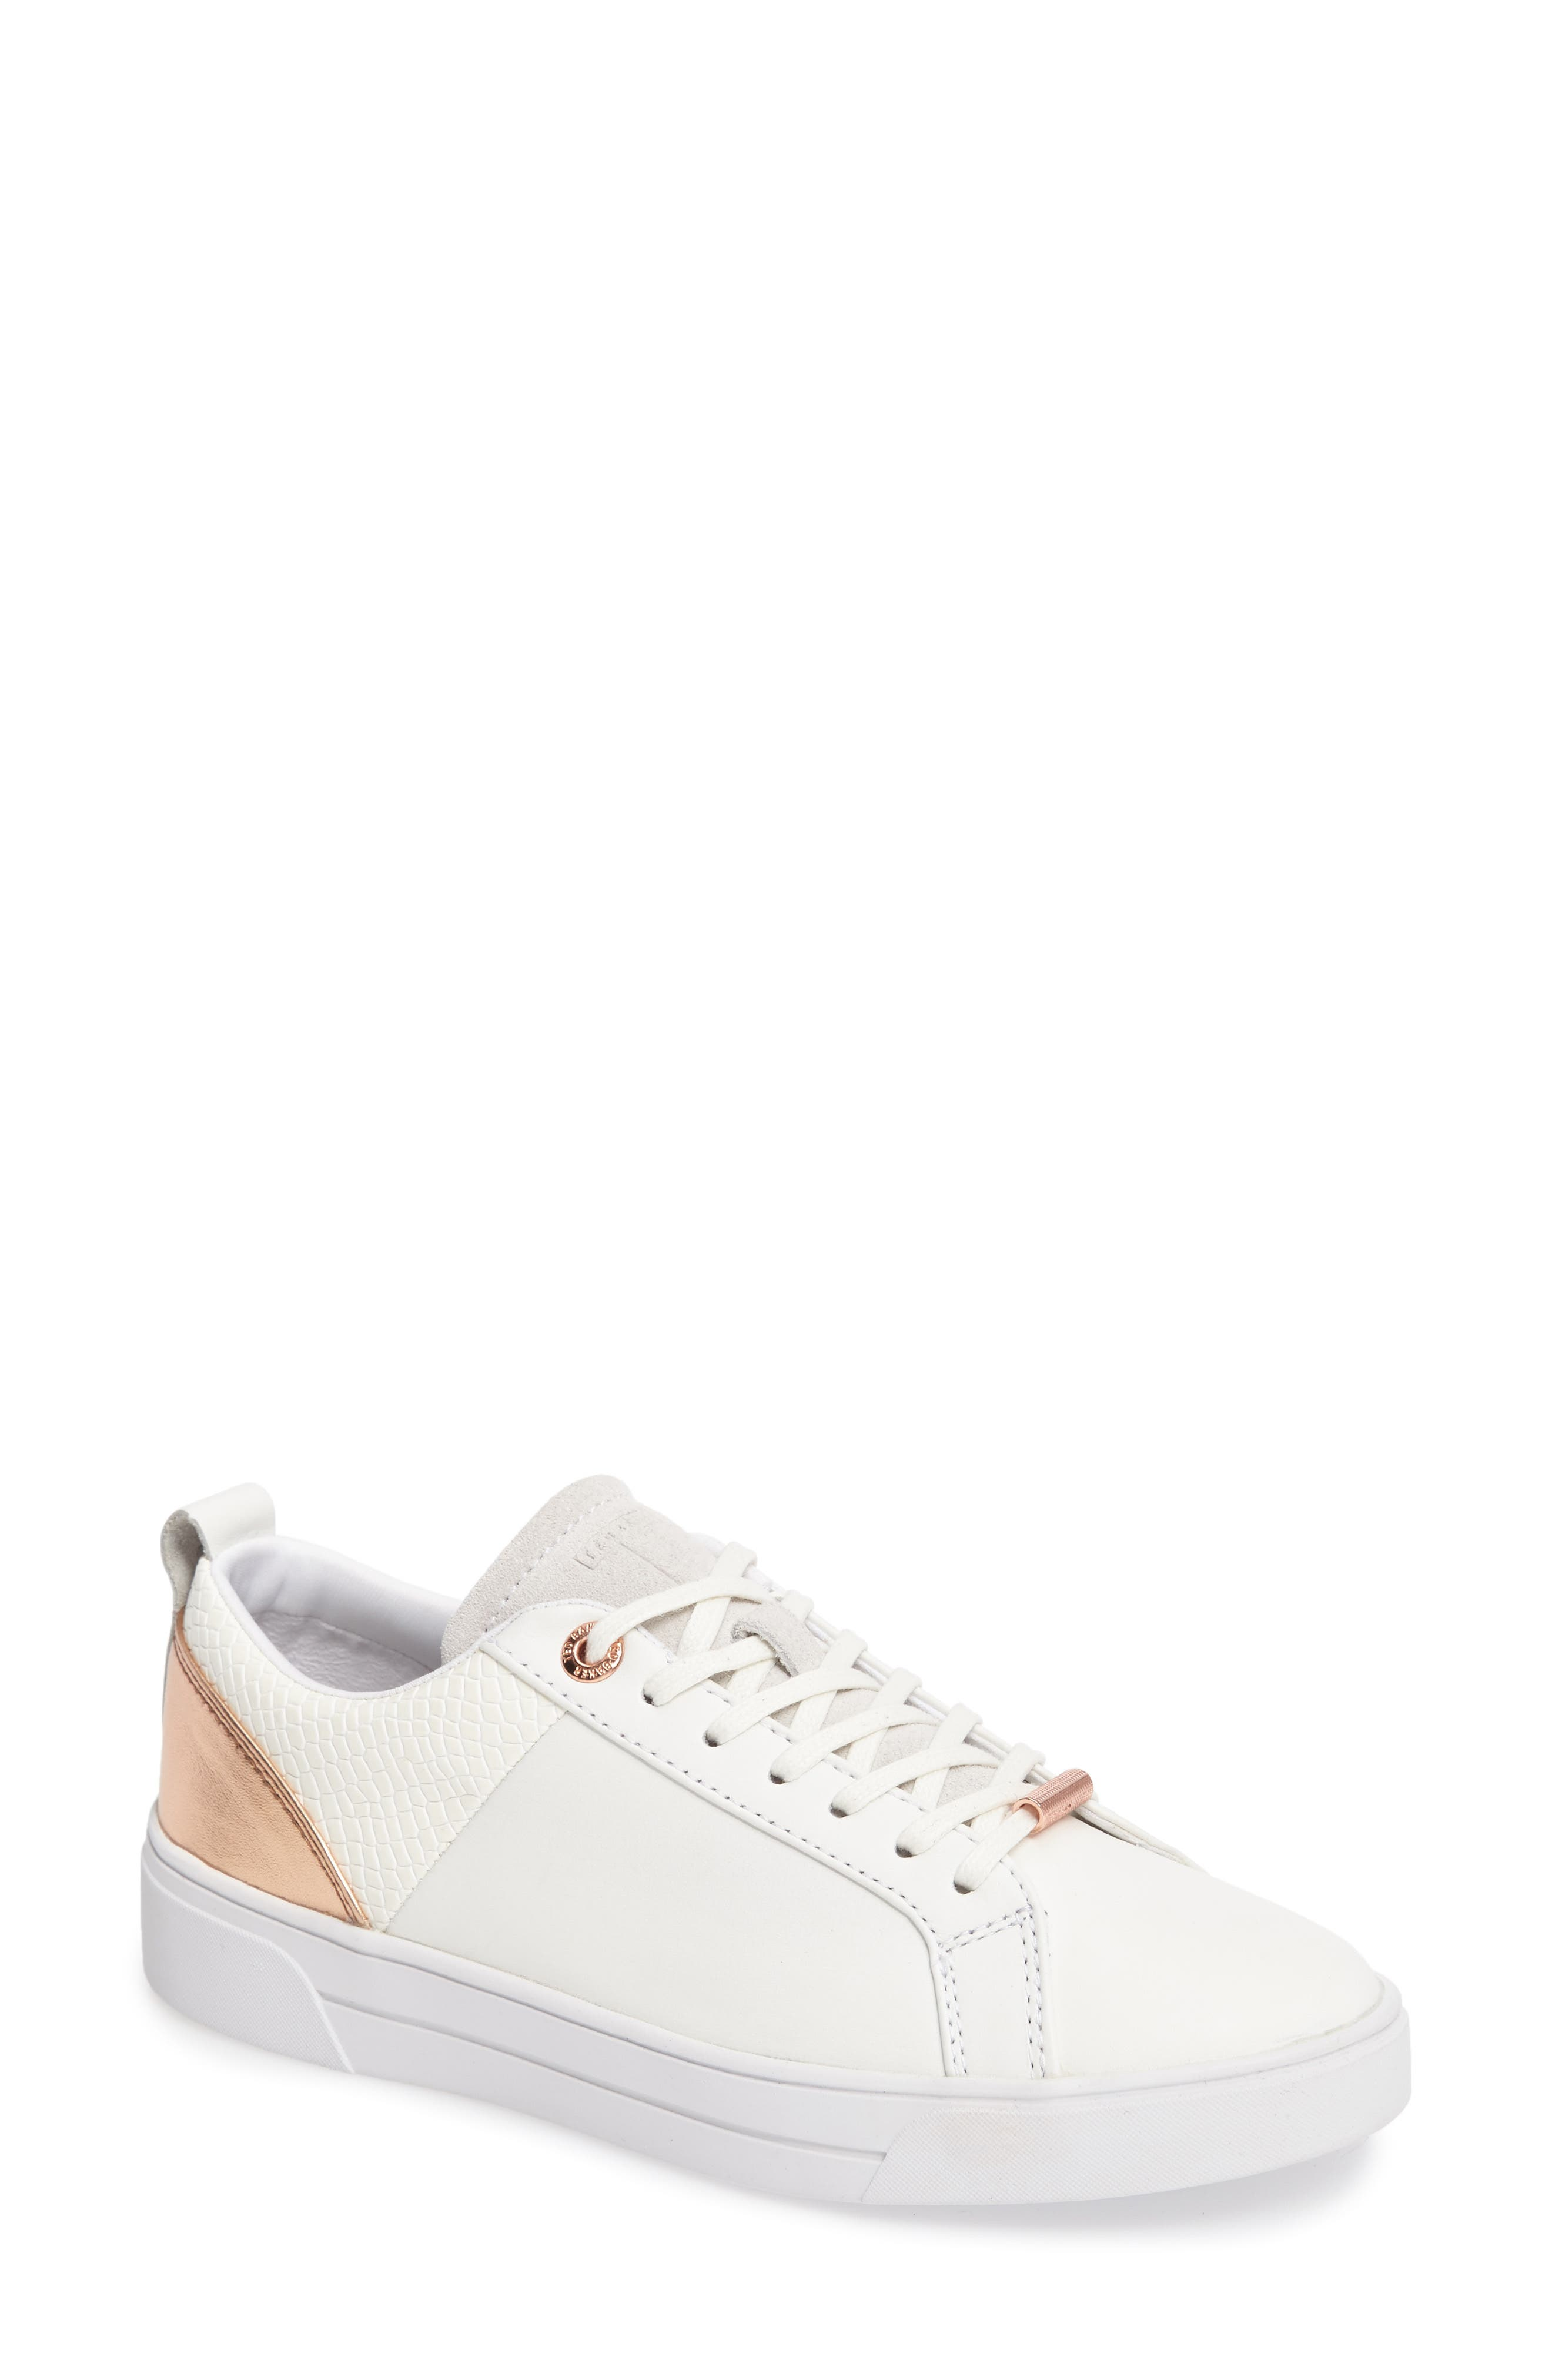 Alternate Image 1 Selected - Ted Baker London Kulei Lace-Up Sneaker (Women)